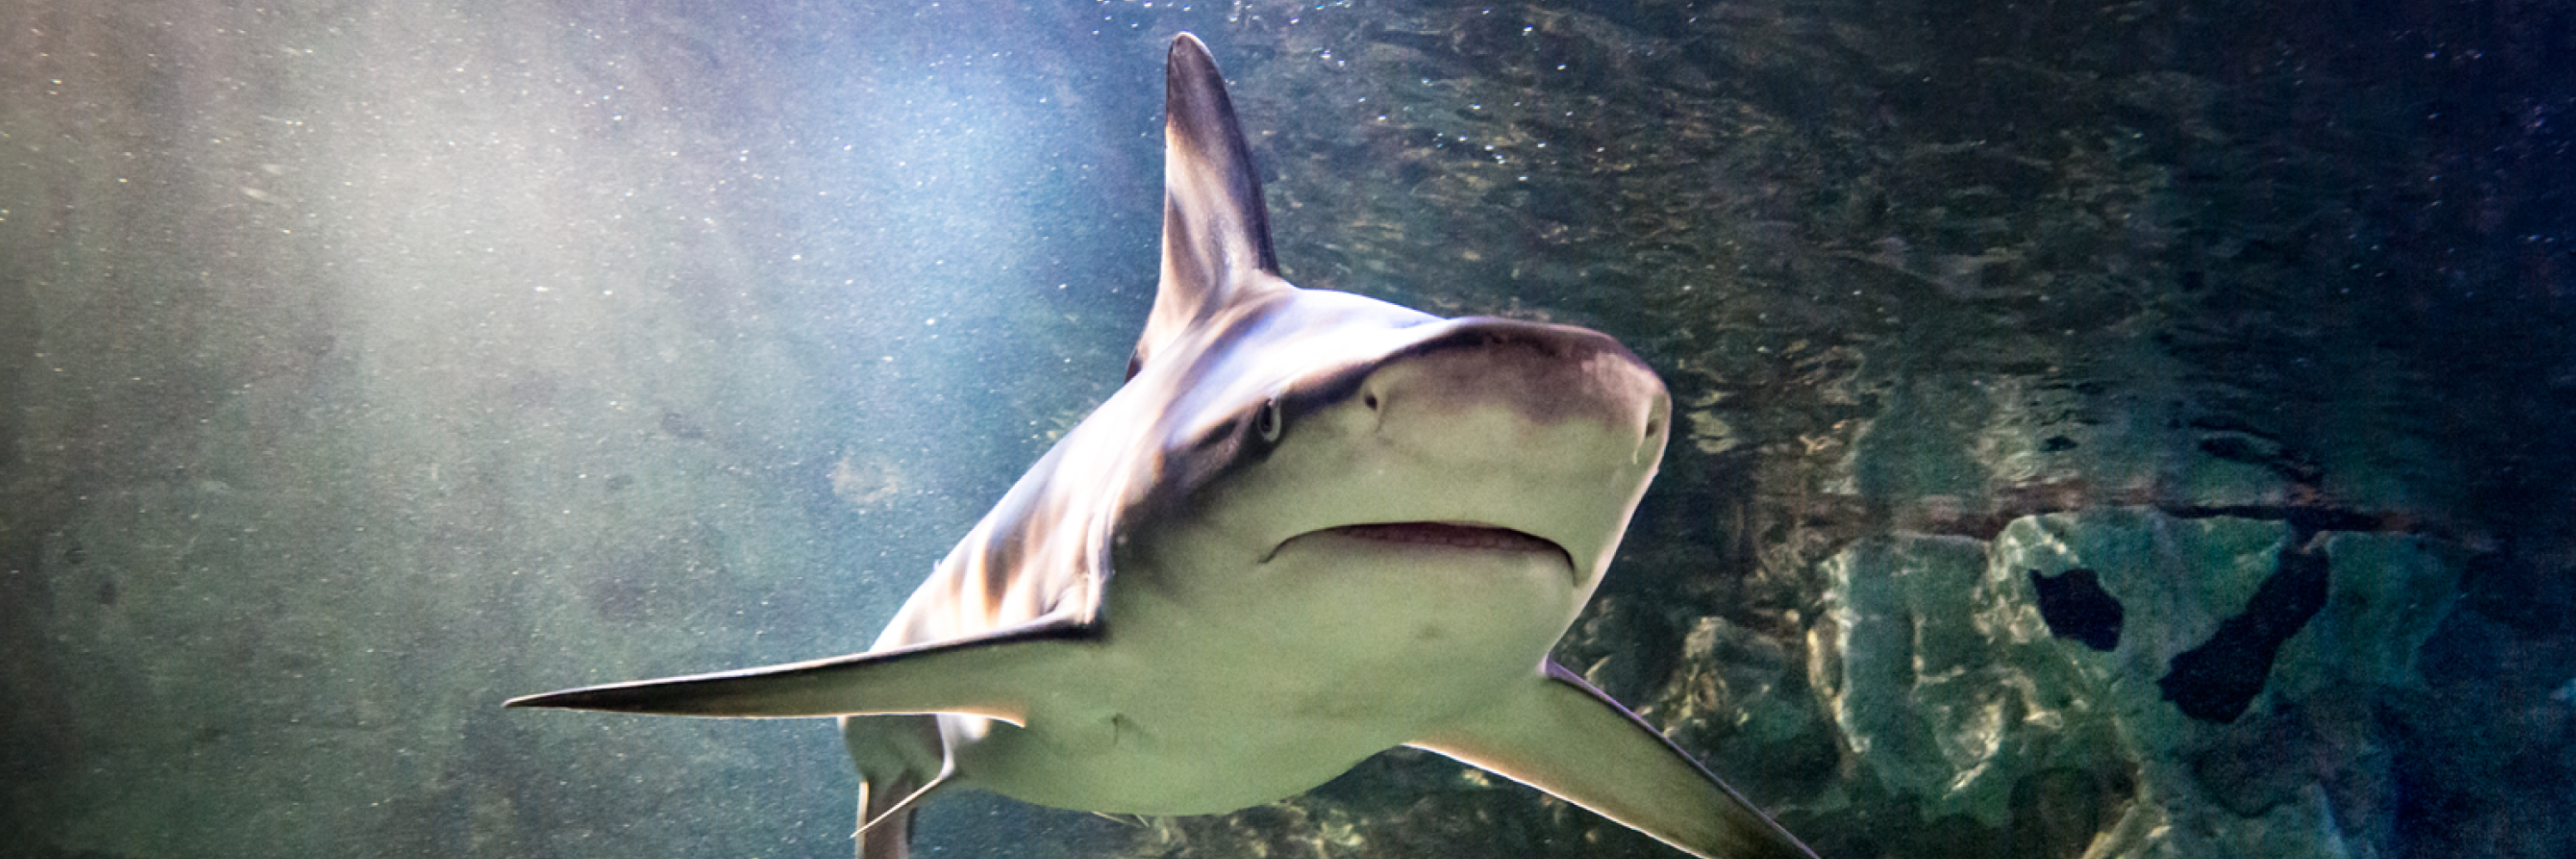 Shark 3000X1000 | SEA LIFE Aquarium